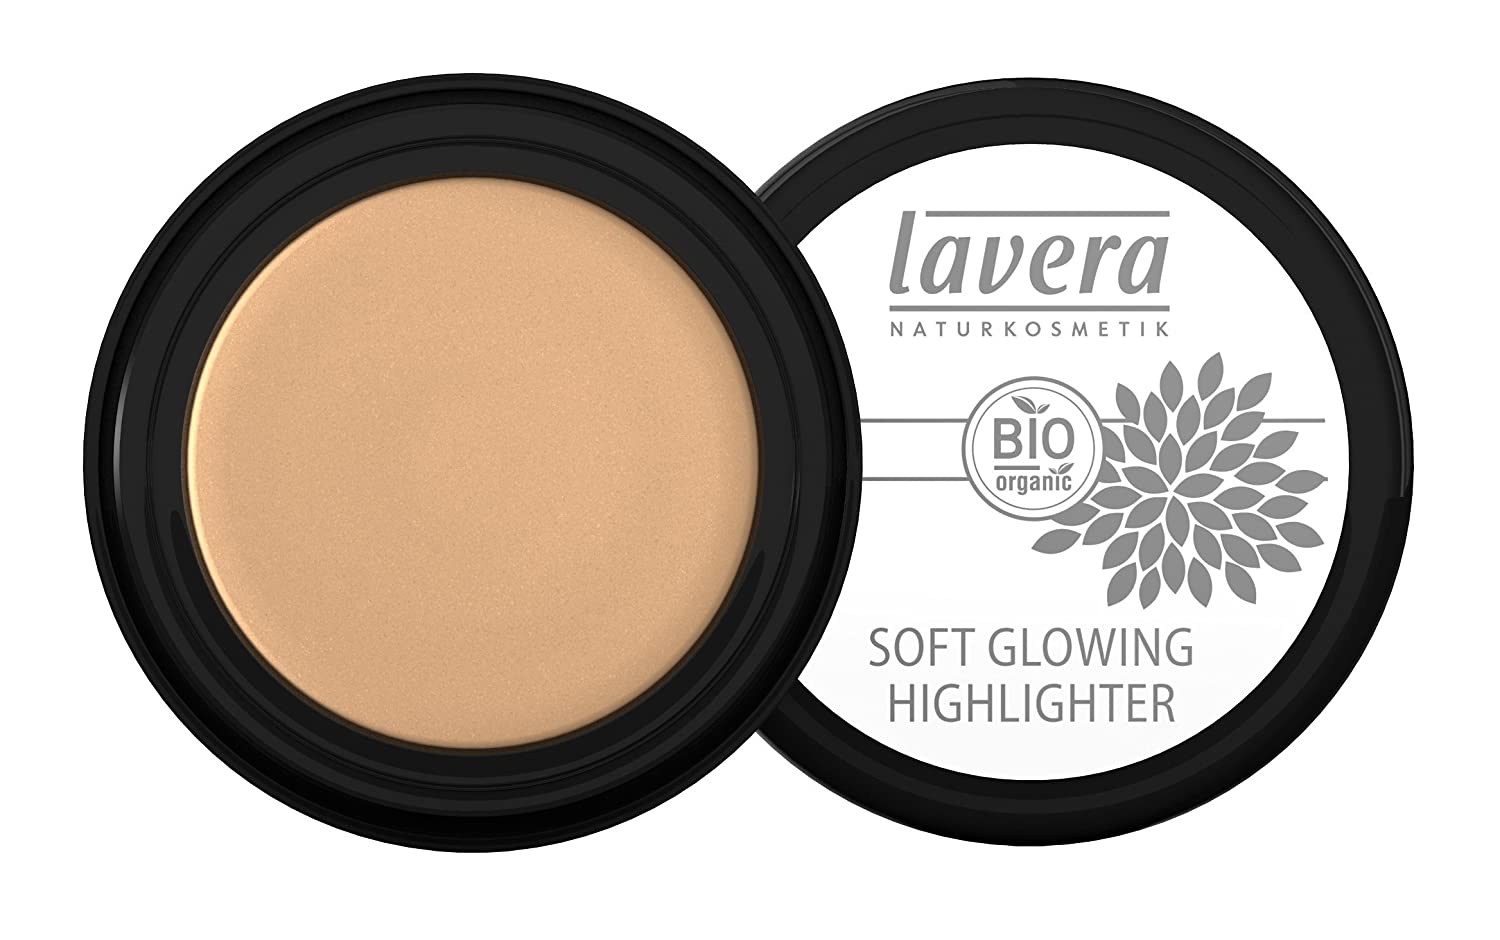 Lavera Soft Glowing Highlighter, Golden Shine, illuminante Laverana 1043640